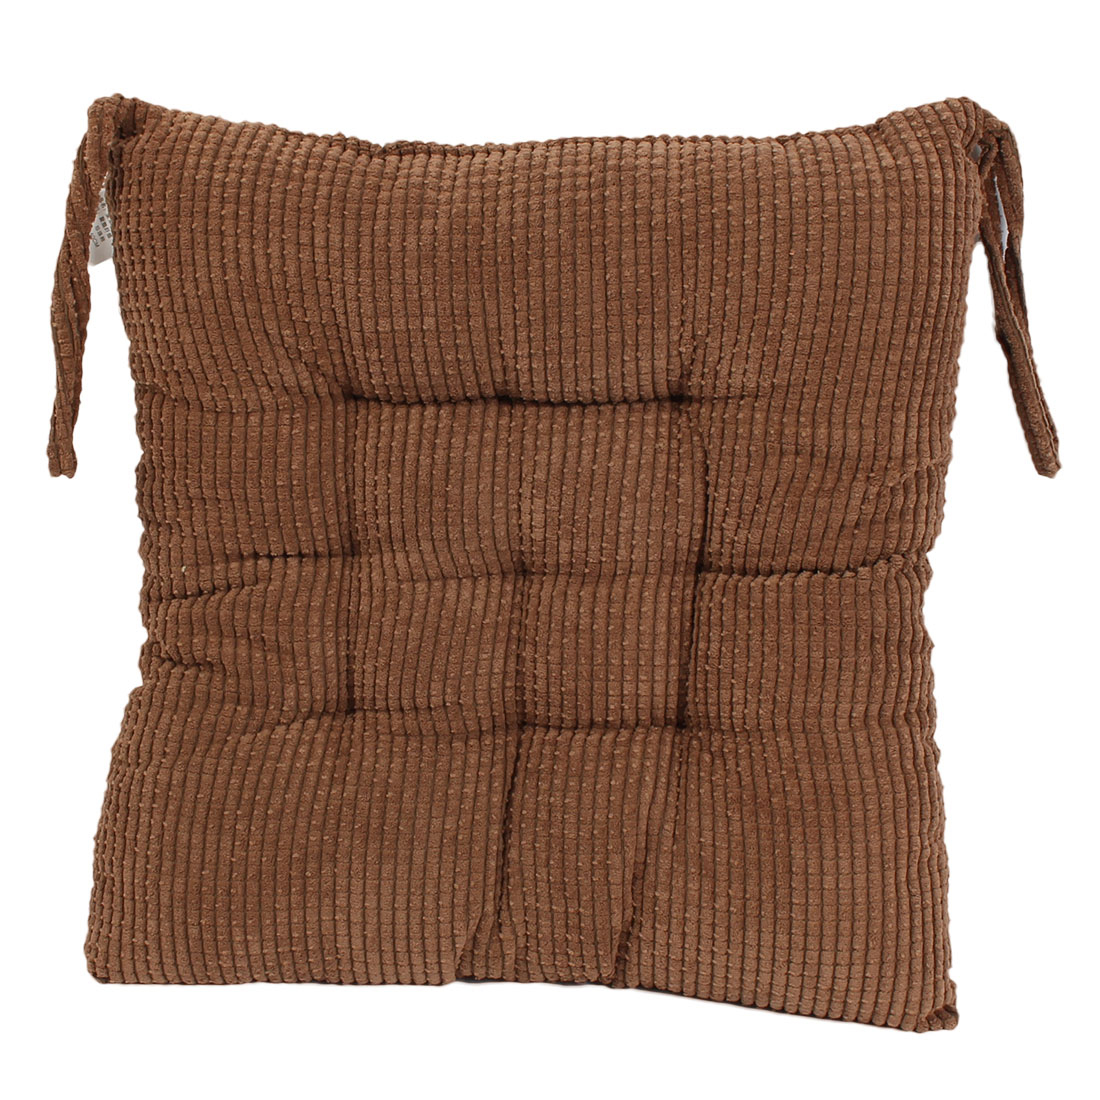 Household Office Corduroy Square Shaped Thickness Chair Cushion Coffee Color